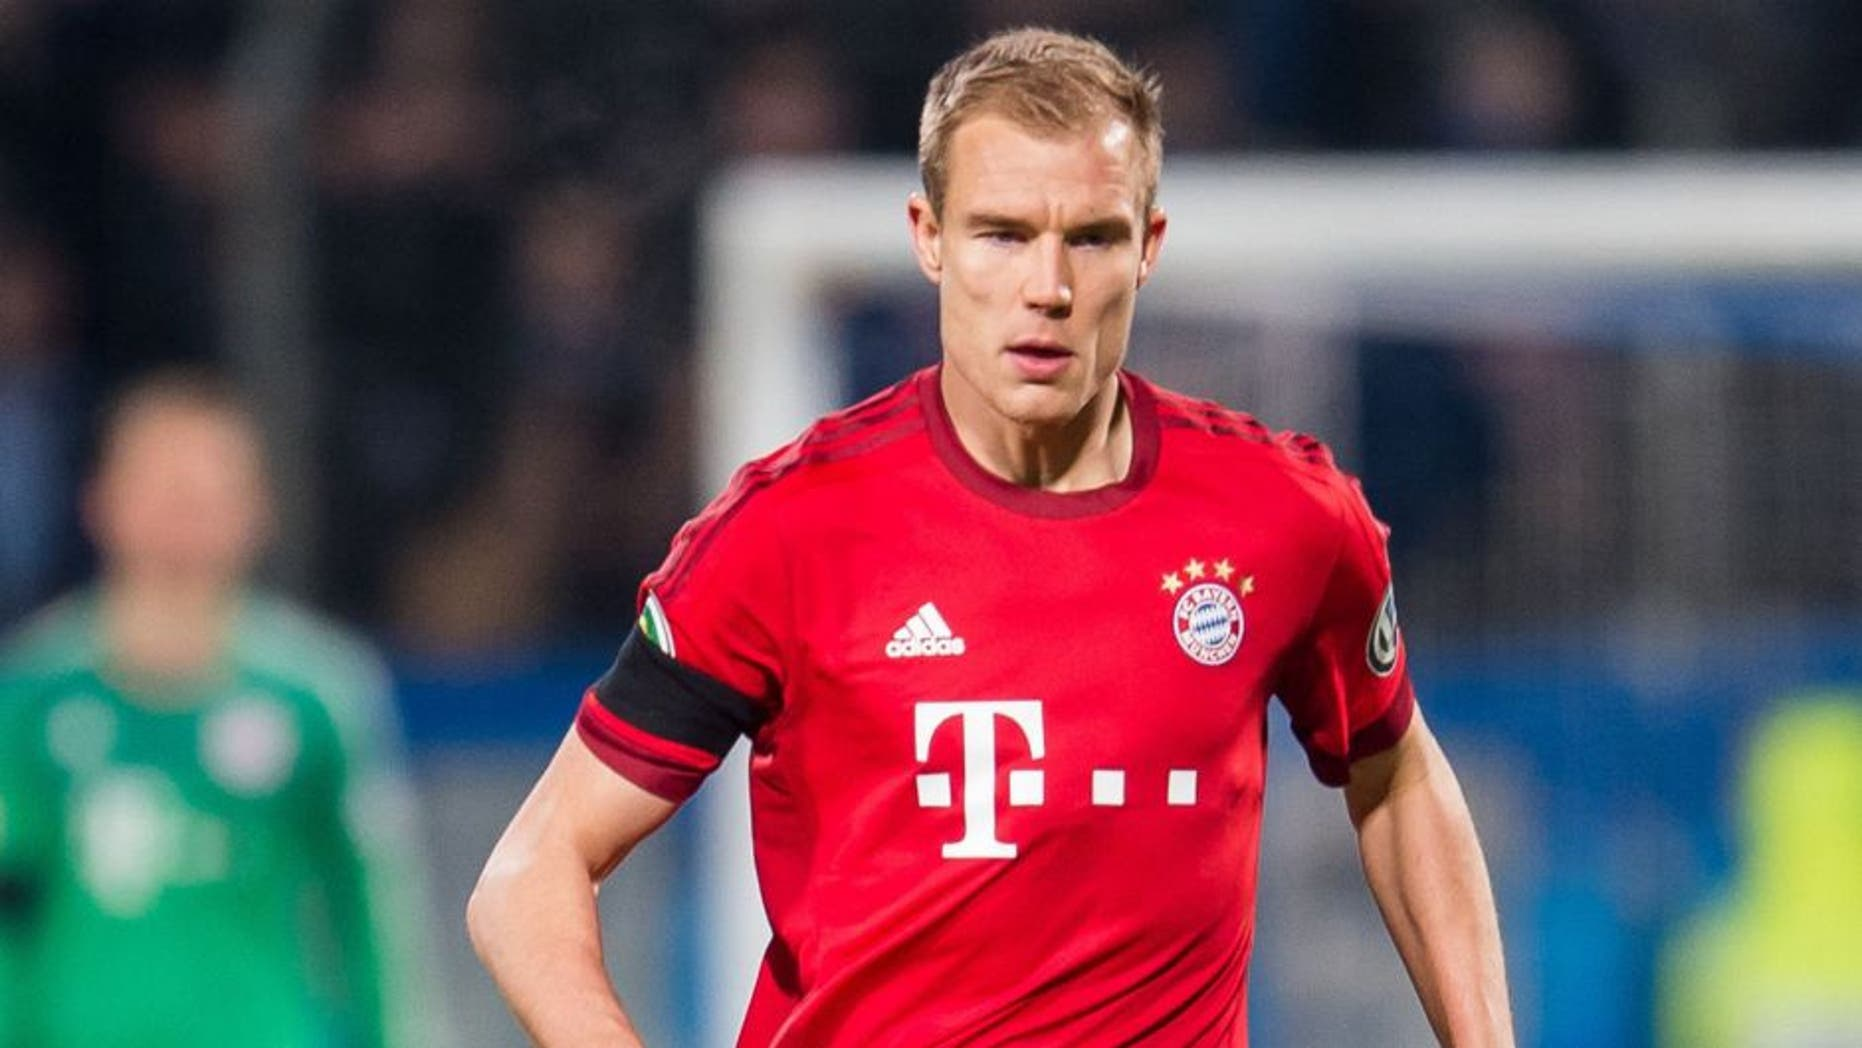 Holger Badstuber of Bayern Munich during the Bundesliga match between VfL Bochum and Bayern Munich on February 4, 2016 at the RewirpowerSTADION in Bochum, Germany.(Photo by VI Images via Getty Images)